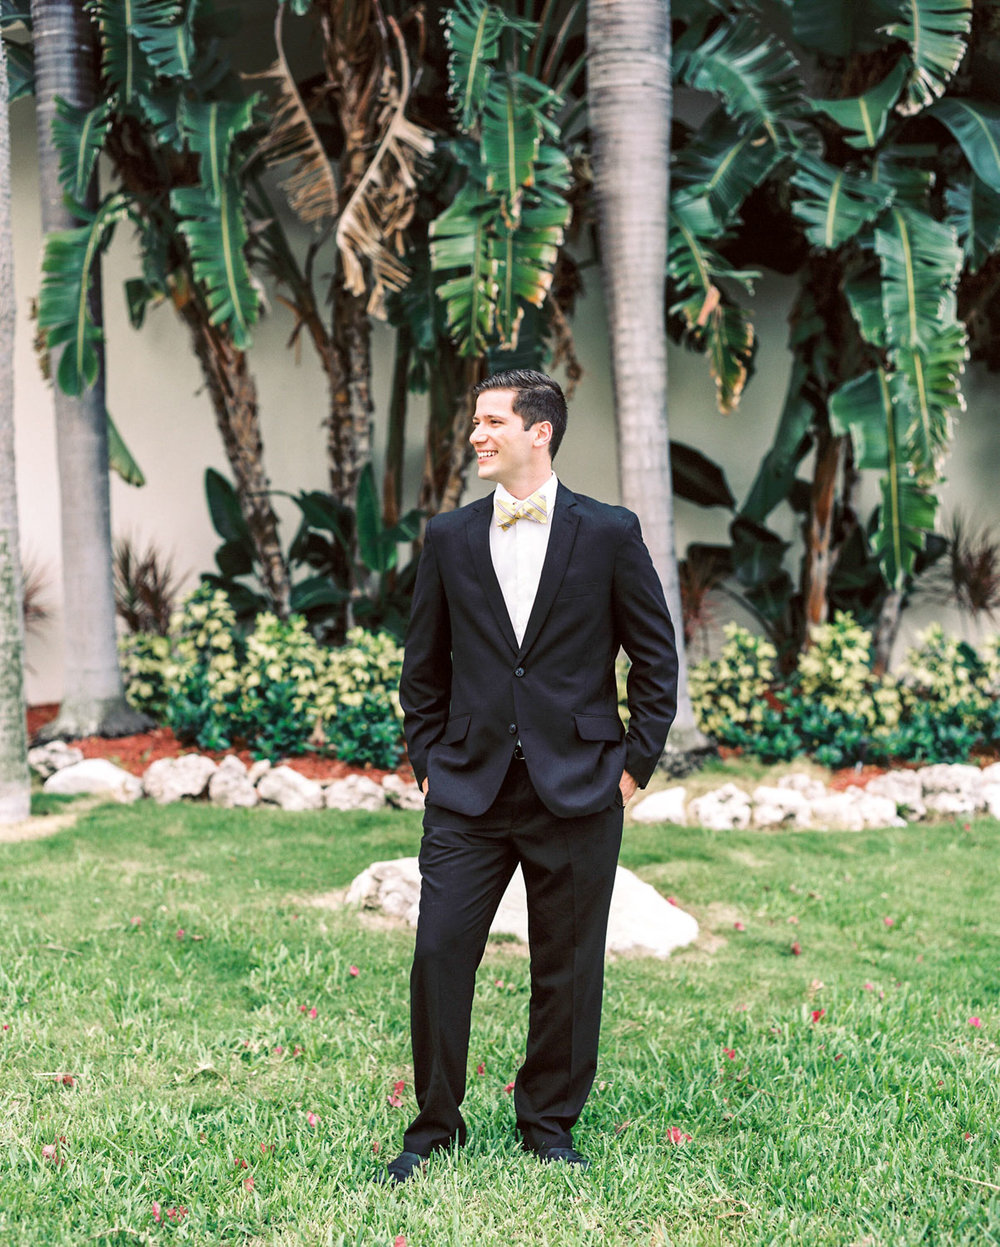 Charlottesville_Miami_Film_Wedding_Photographer-17.jpg